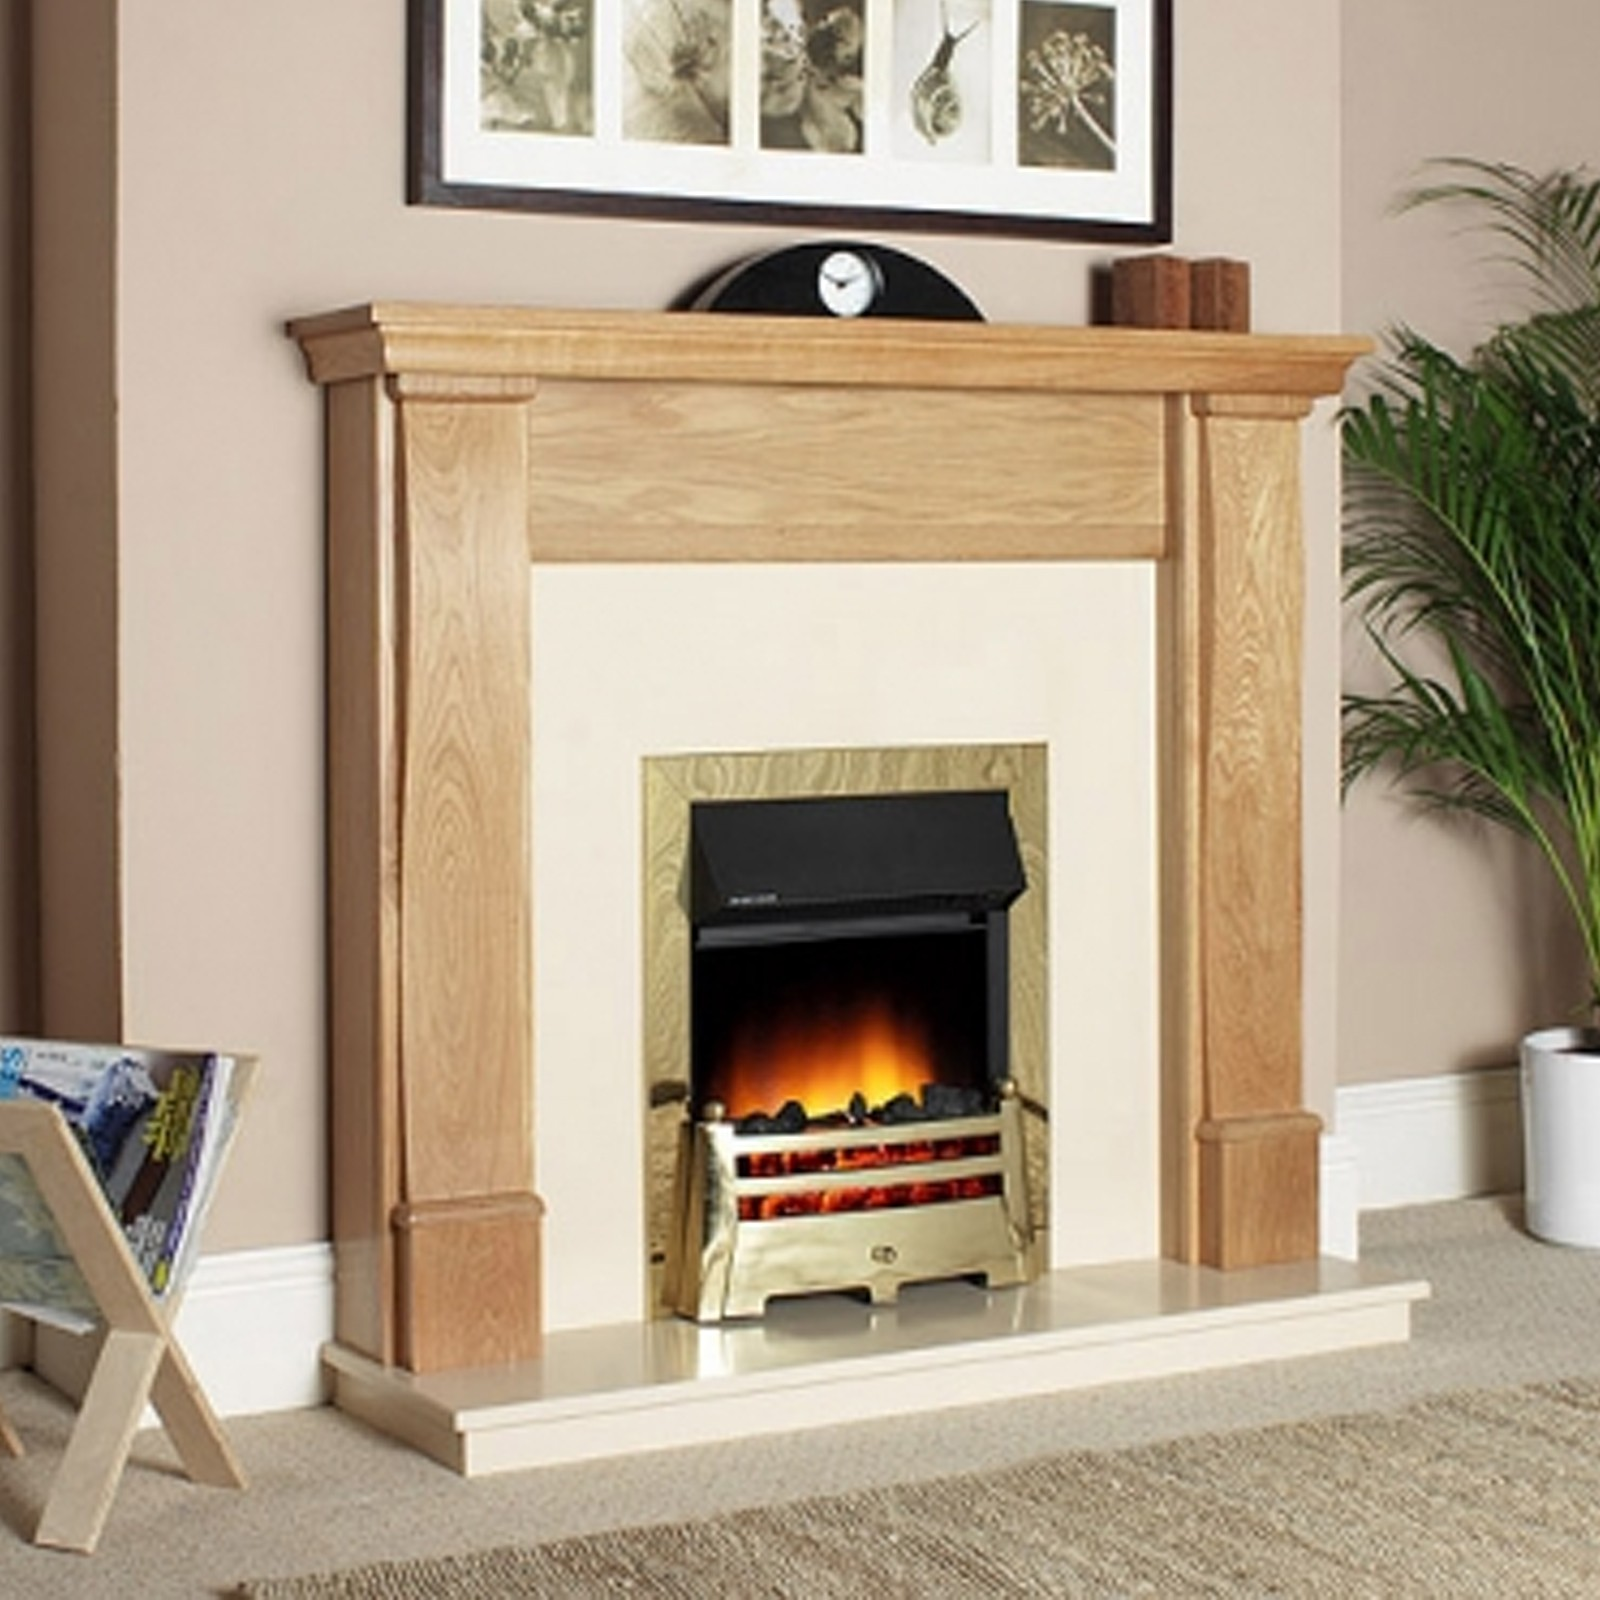 Wooden suite katell cresswell electric fireplace suite cheapest katell cresswell electric fireplace suite teraionfo